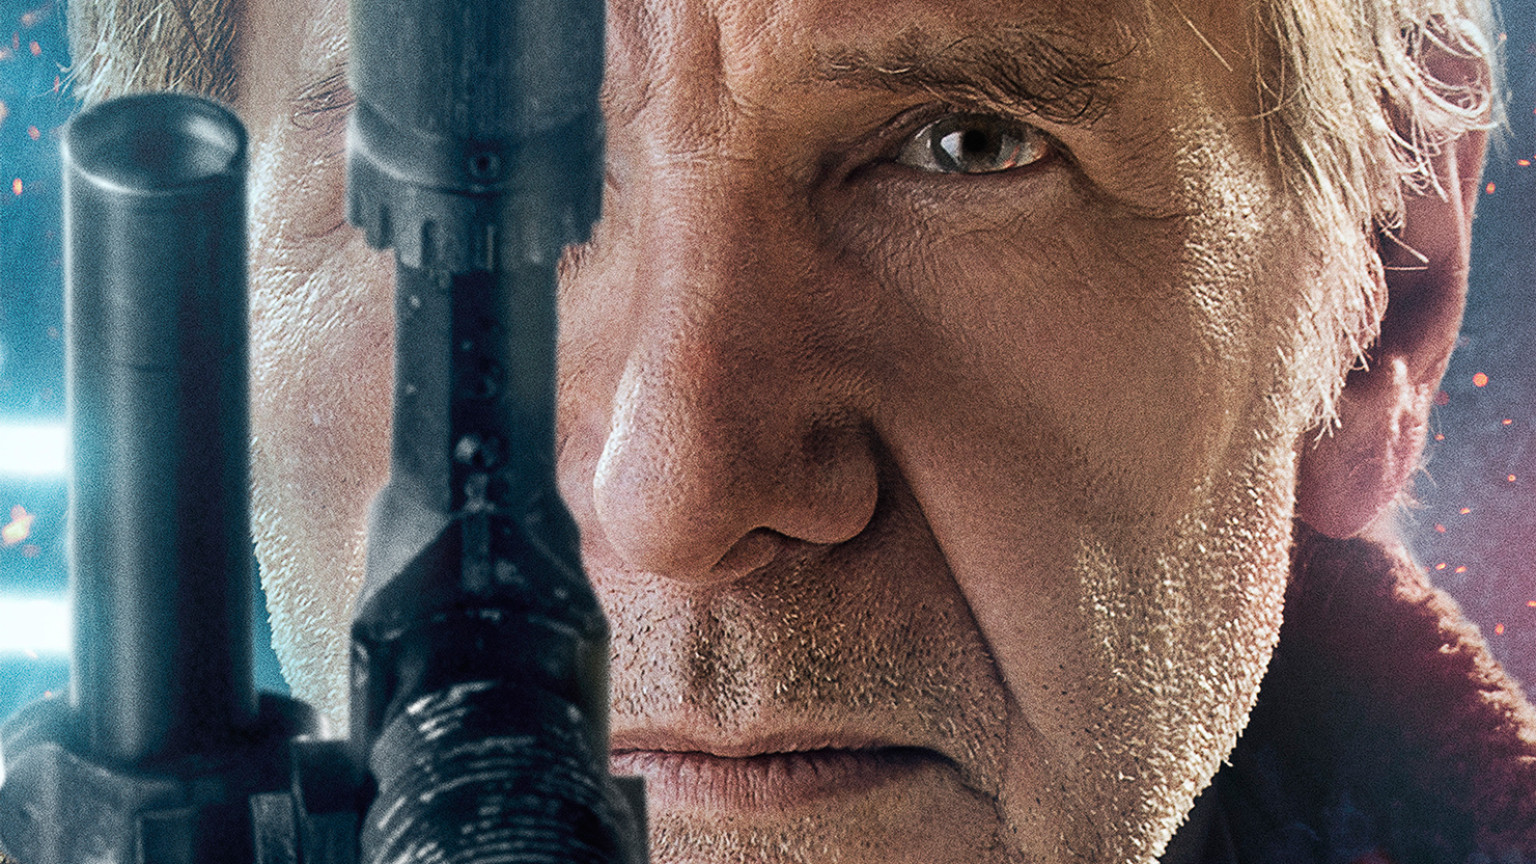 Han Solo - Star Wars: The Force Awakens Character Poster